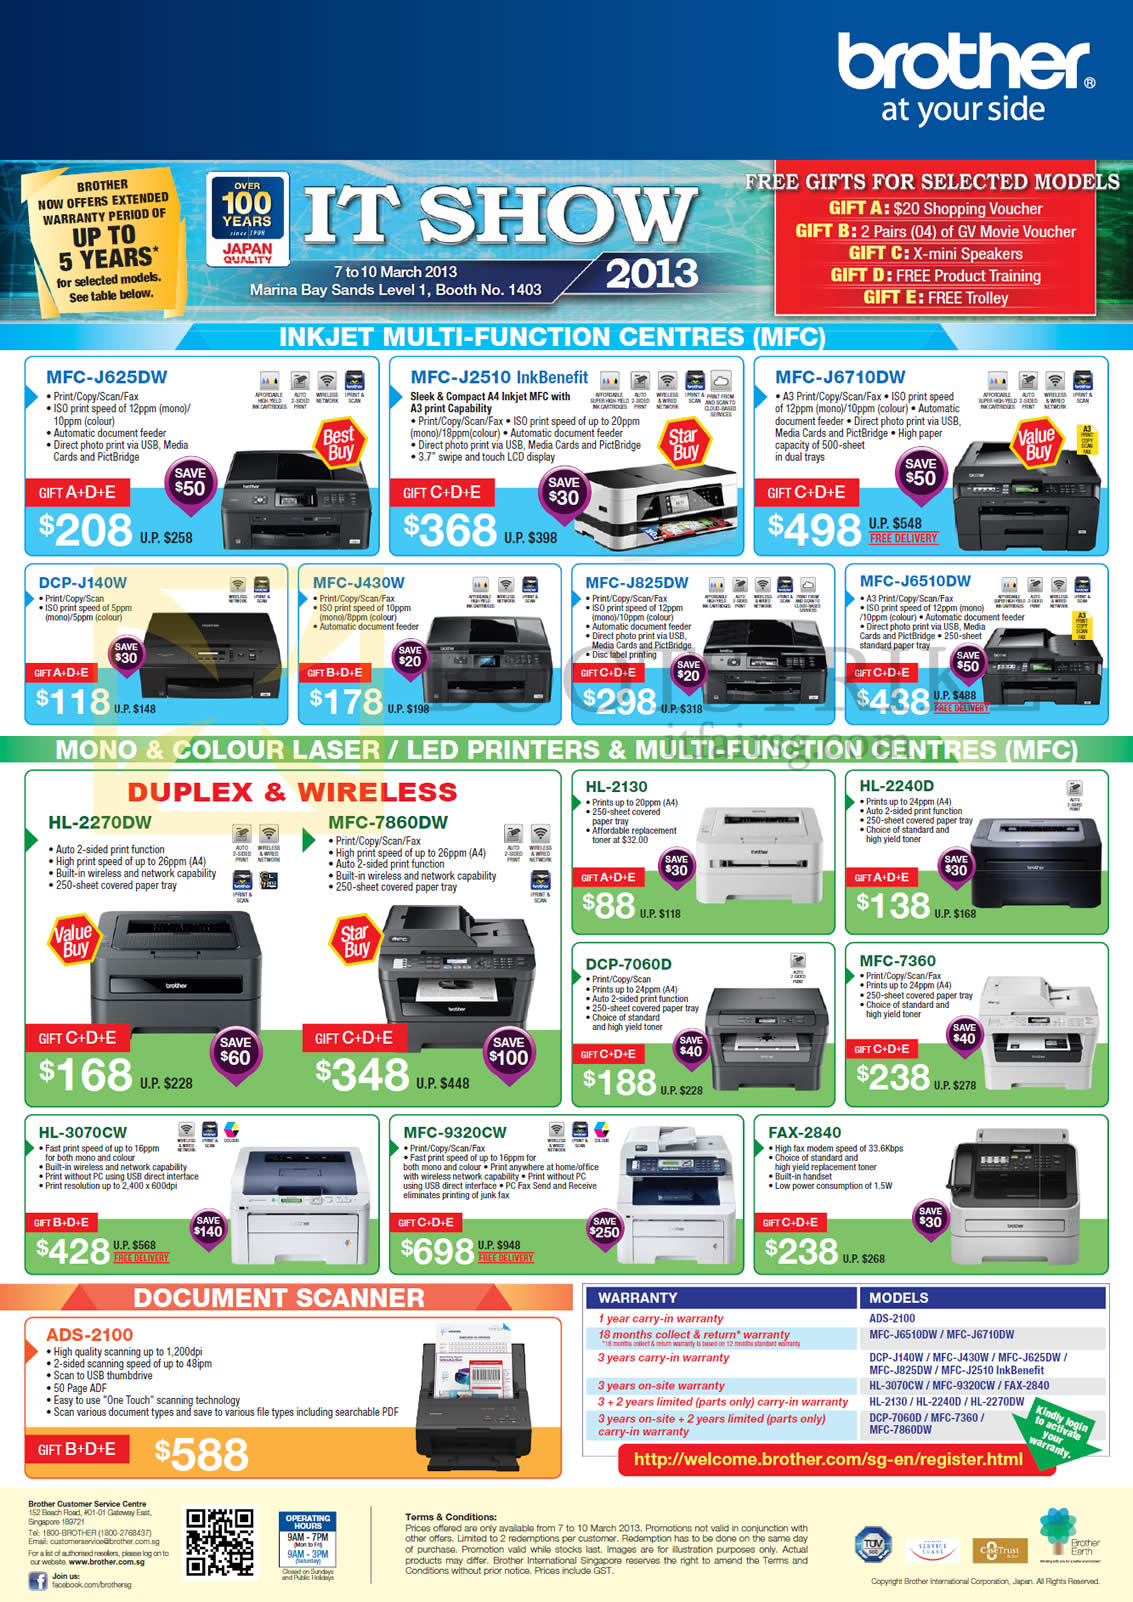 IT SHOW 2013 price list image brochure of Brother Printers Inkjet LED MFC-J625DW, J2510, J6710DW, J430W, J825DW, J6510DW, 7860DW, 7360, 9320CW, Laser DCP-J140W, 7060D, HL-2270DW, 2130, 3070CW, 2240D, FAX-2840, Scanner ADS-2100